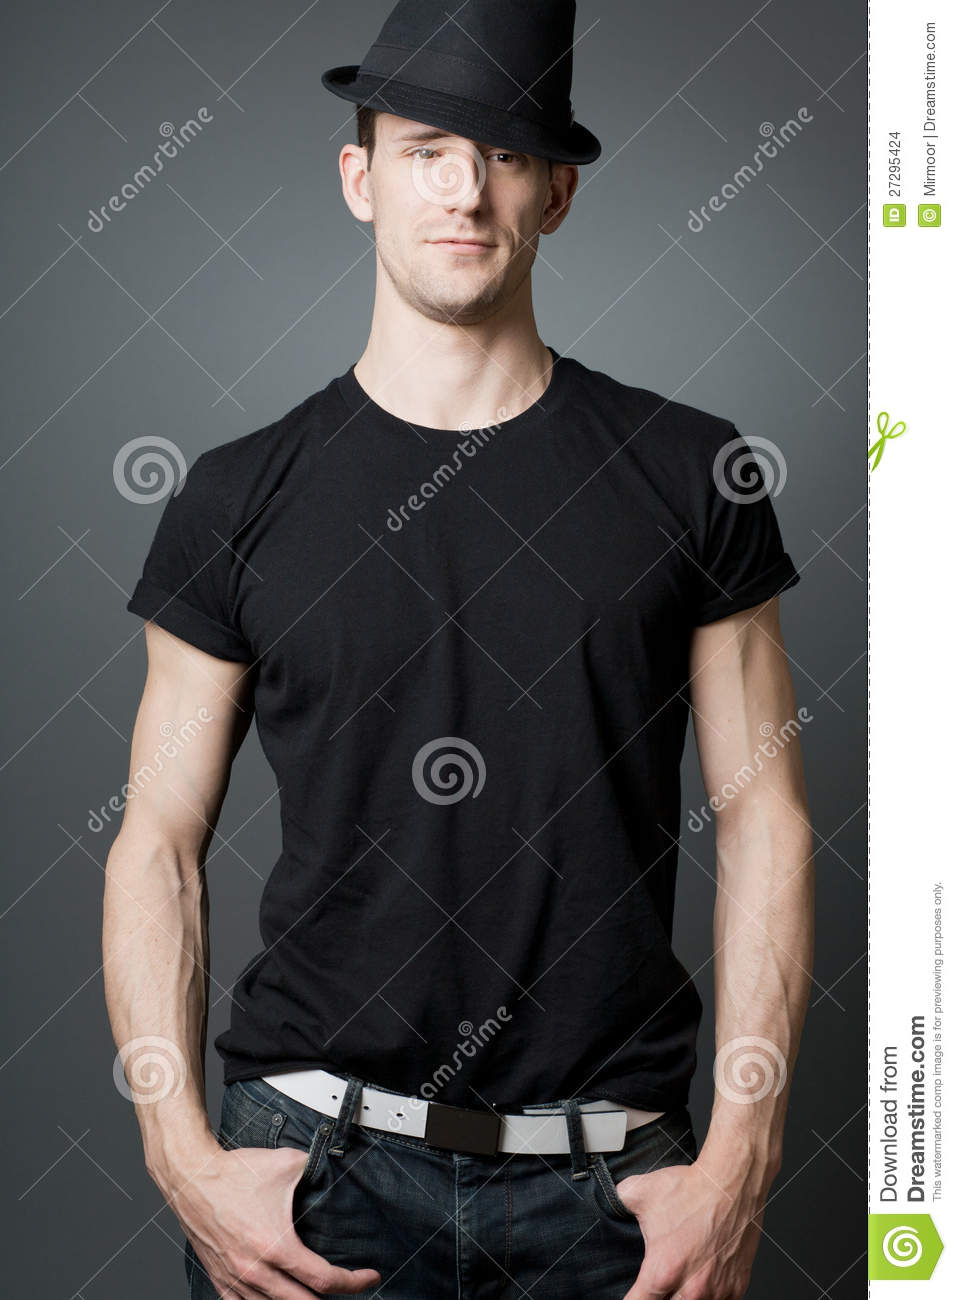 Black t shirt guy - Young Handsome Guy In Black T Shirt Stock Images Image 27295424